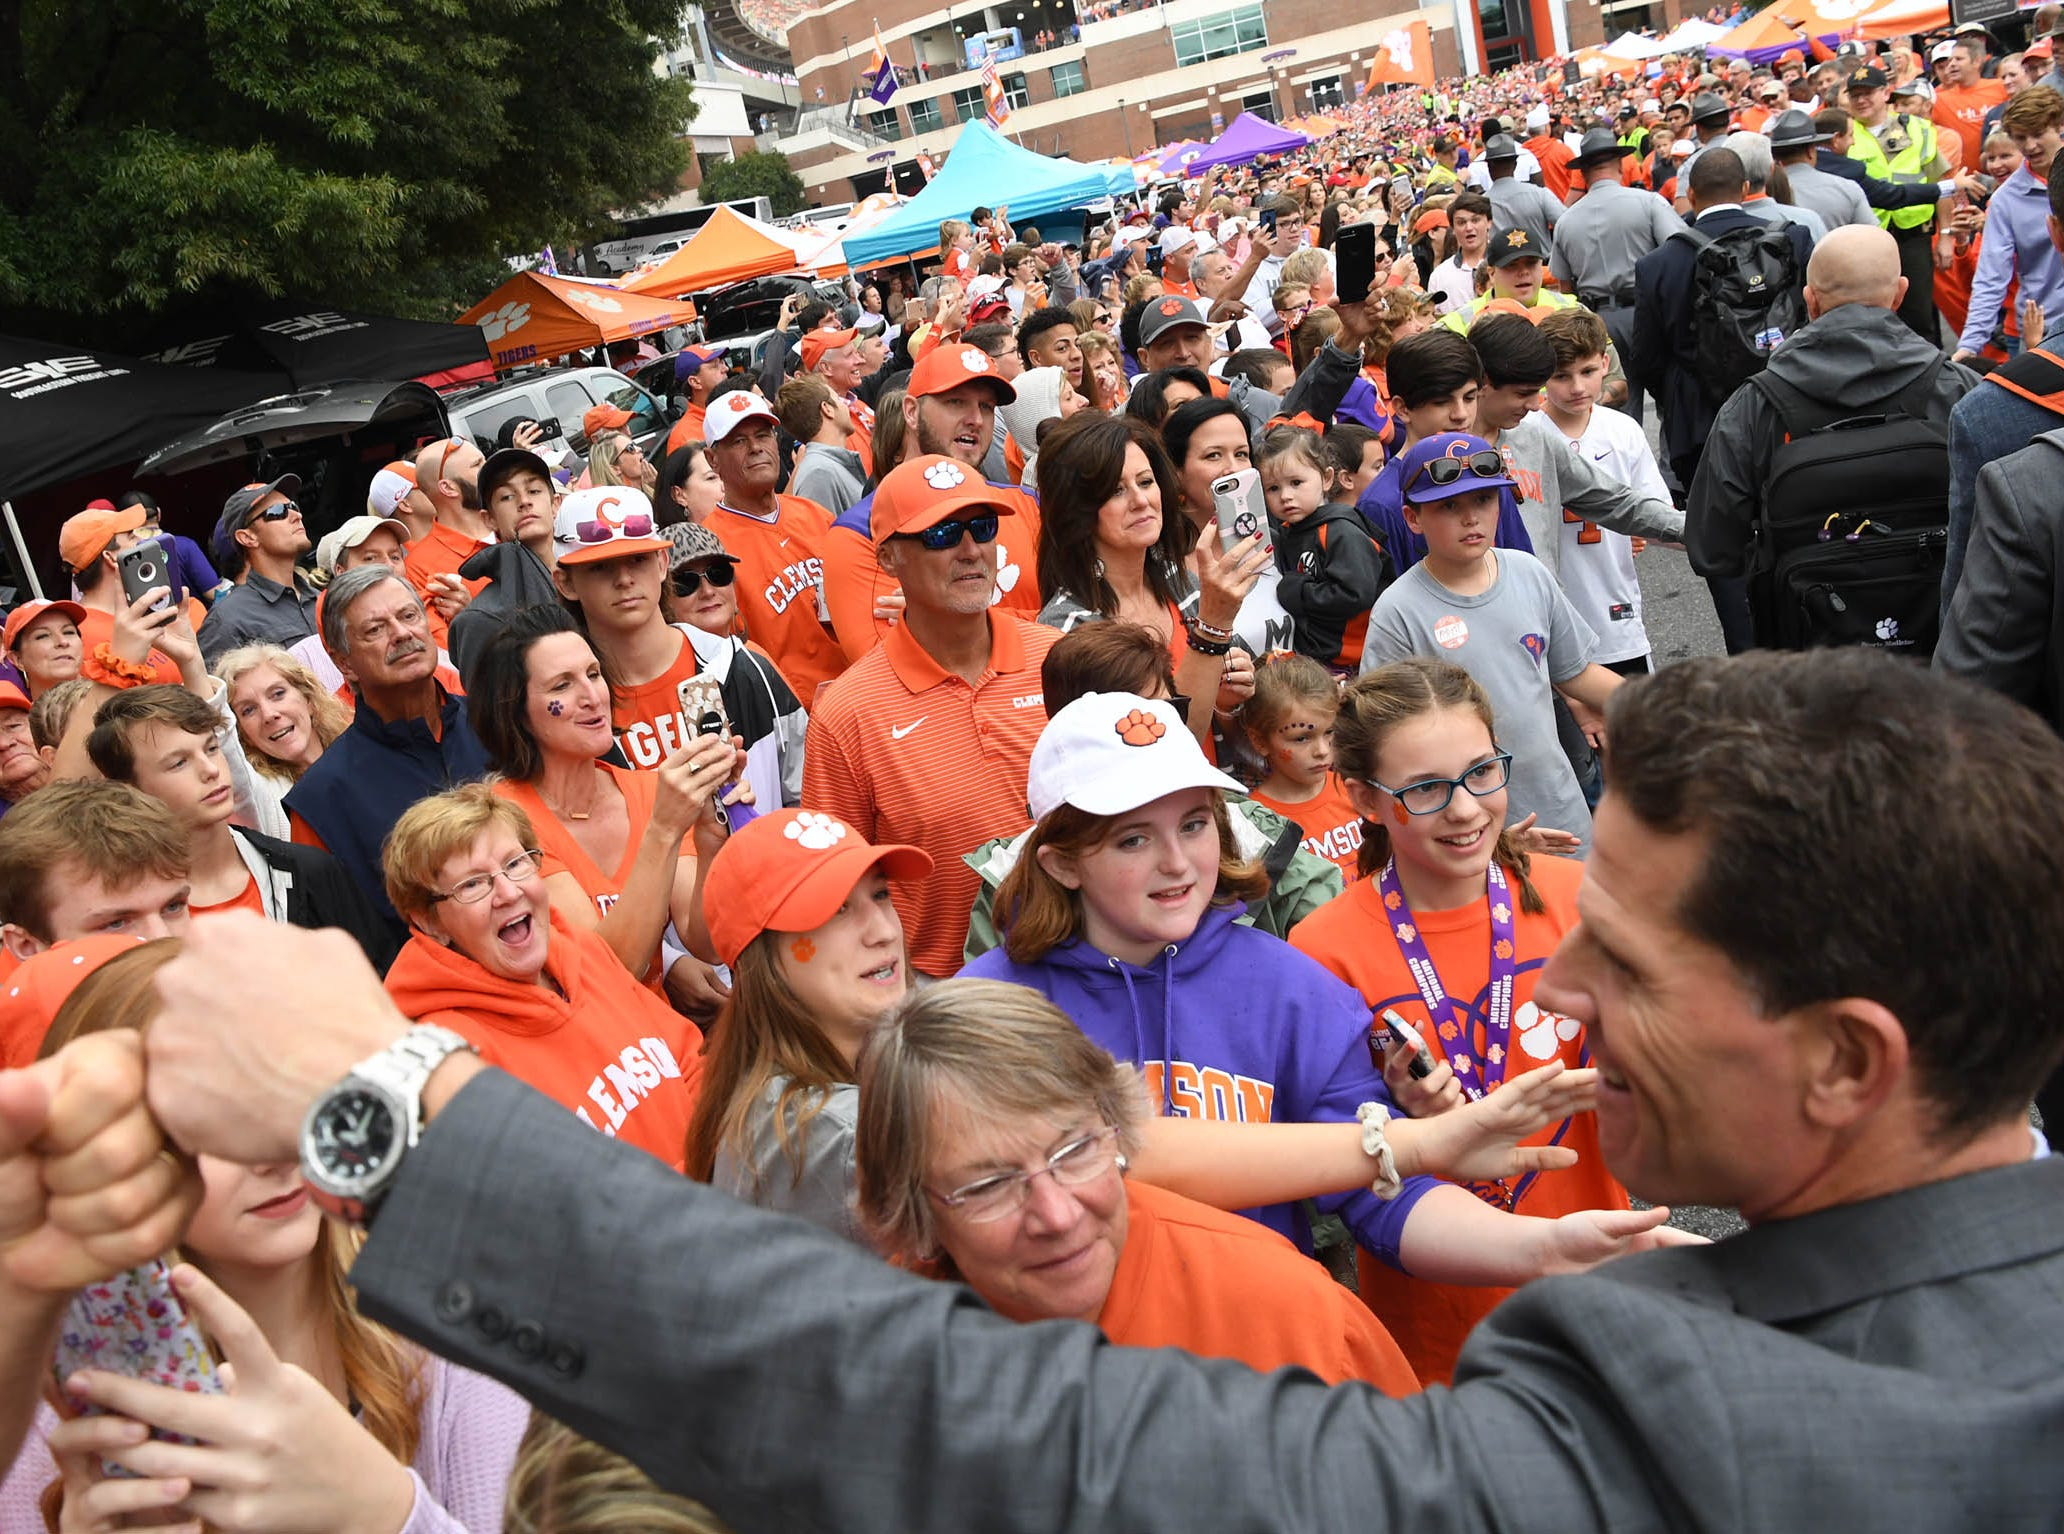 Clemson Defensive Coordinator Brent Venables walks by cheering fans during Tiger Walk before the game in Memorial Stadium on Saturday, October 20, 2018.